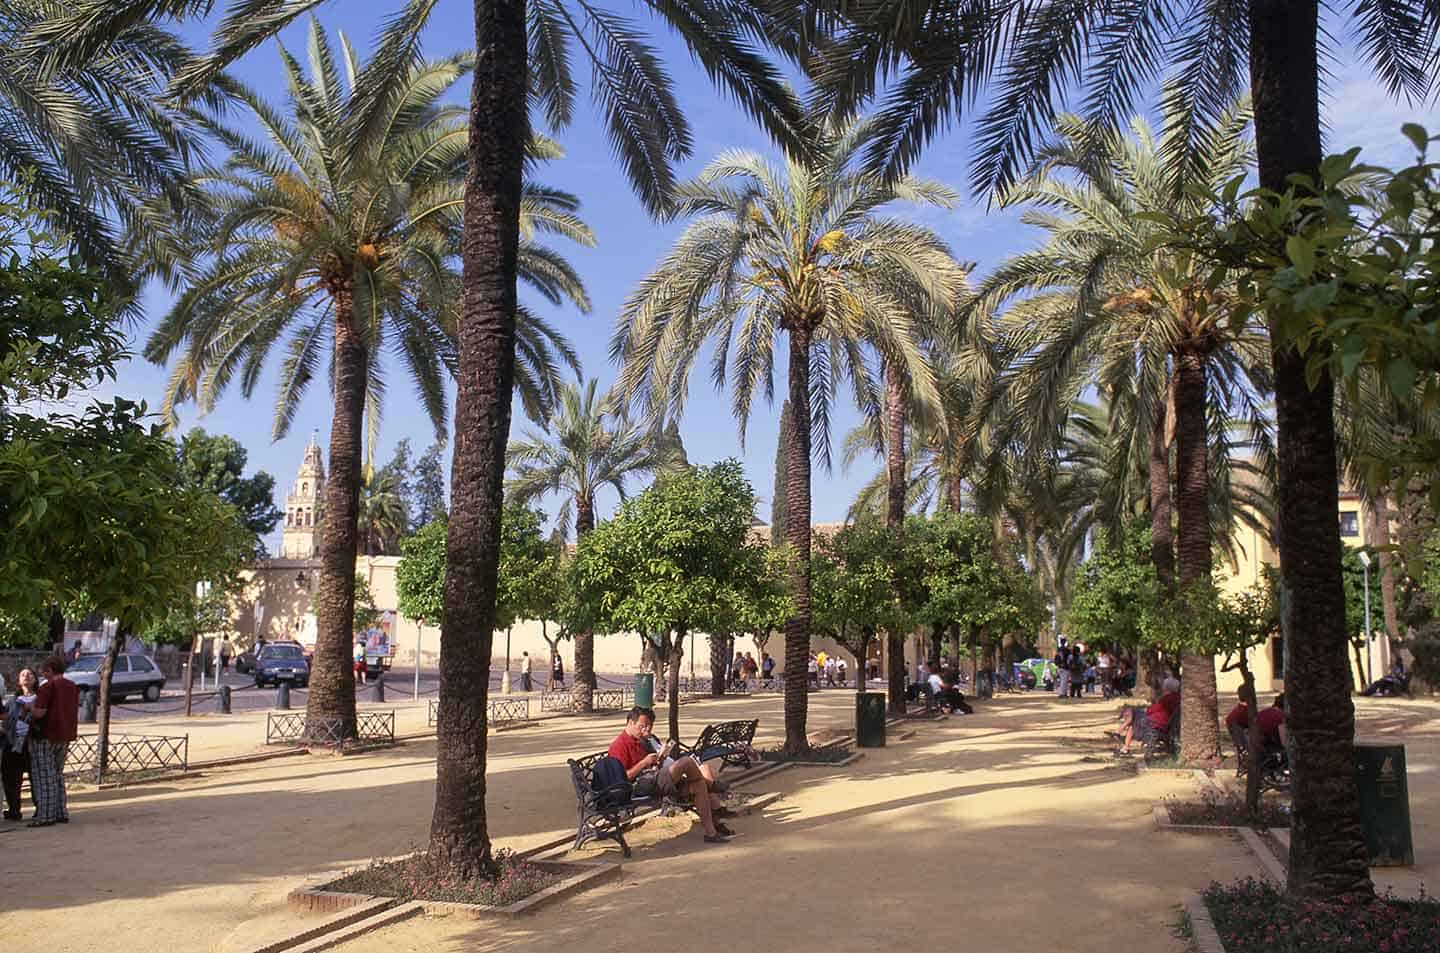 Image of park with palm trees outside Alcazar Cordoba Spain